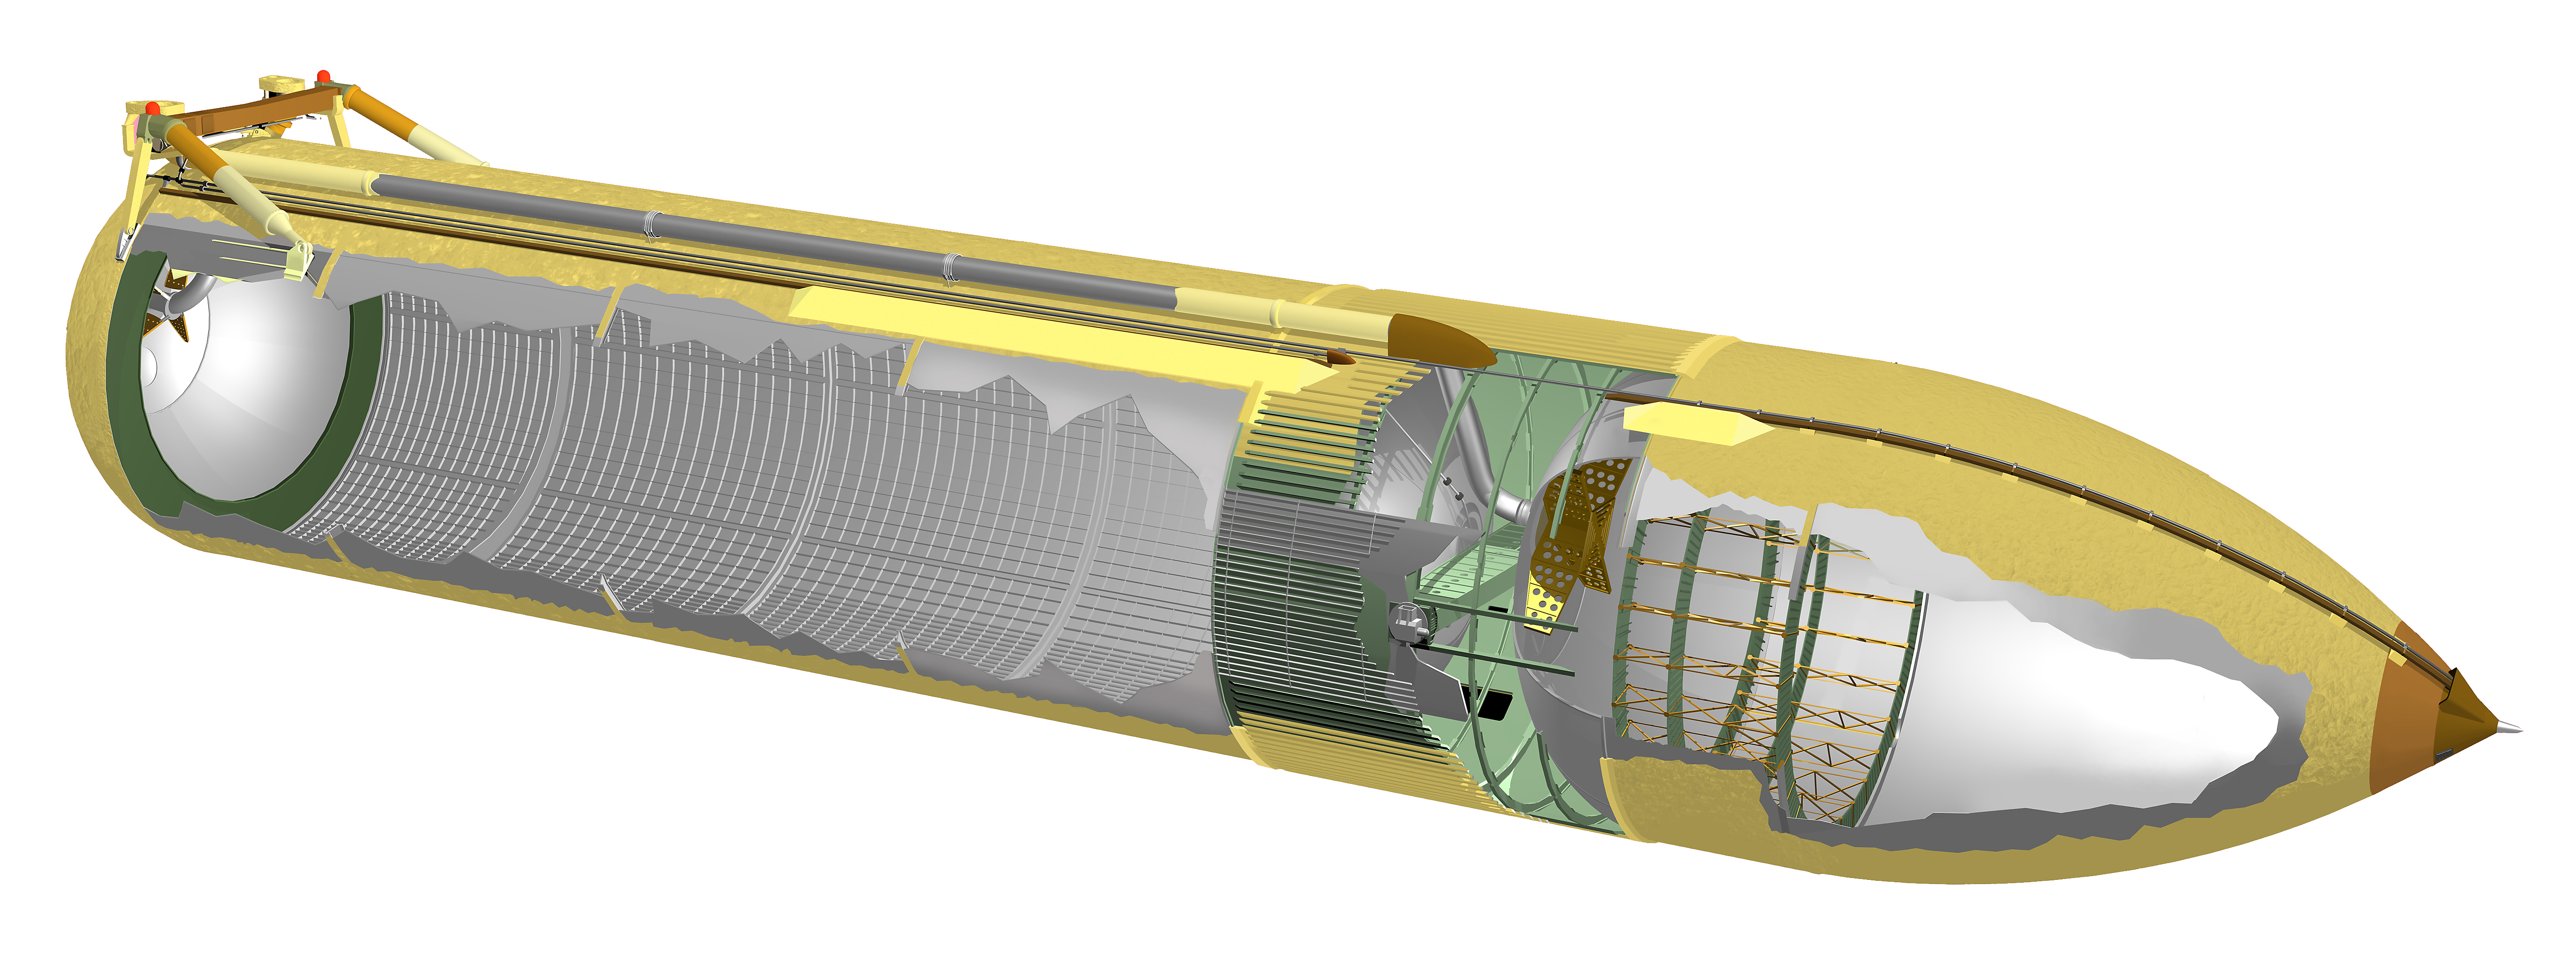 https://www.nasa.gov/centers/marshall/images/content/119006main_External_Tank_Cutaway_5530x2060.jpg